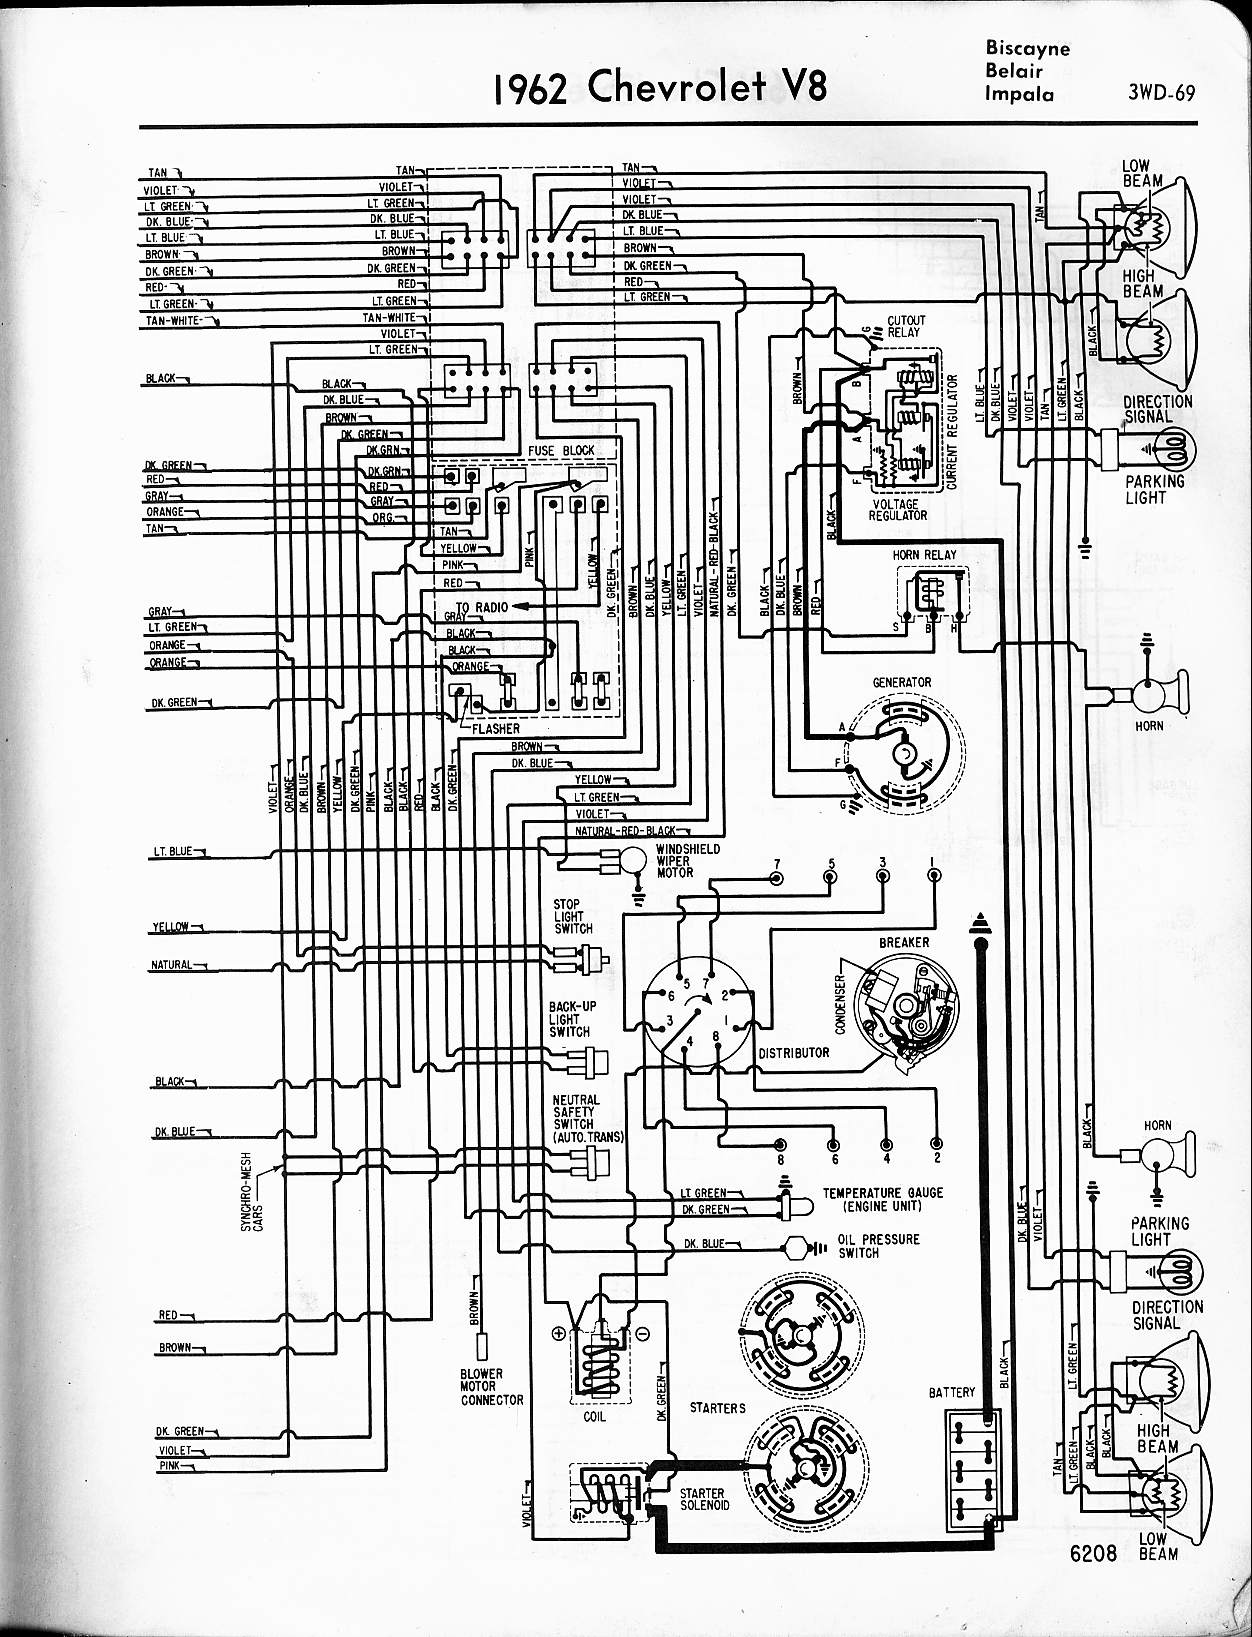 1961 chevy dash wiring diagram free download wiring diagram third 1962 chevy wiring diagram biscaynne headlight switch wiring diagram 1961 wiring diagram 1968 chevy wiring diagram 1961 chevy dash wiring diagram free download